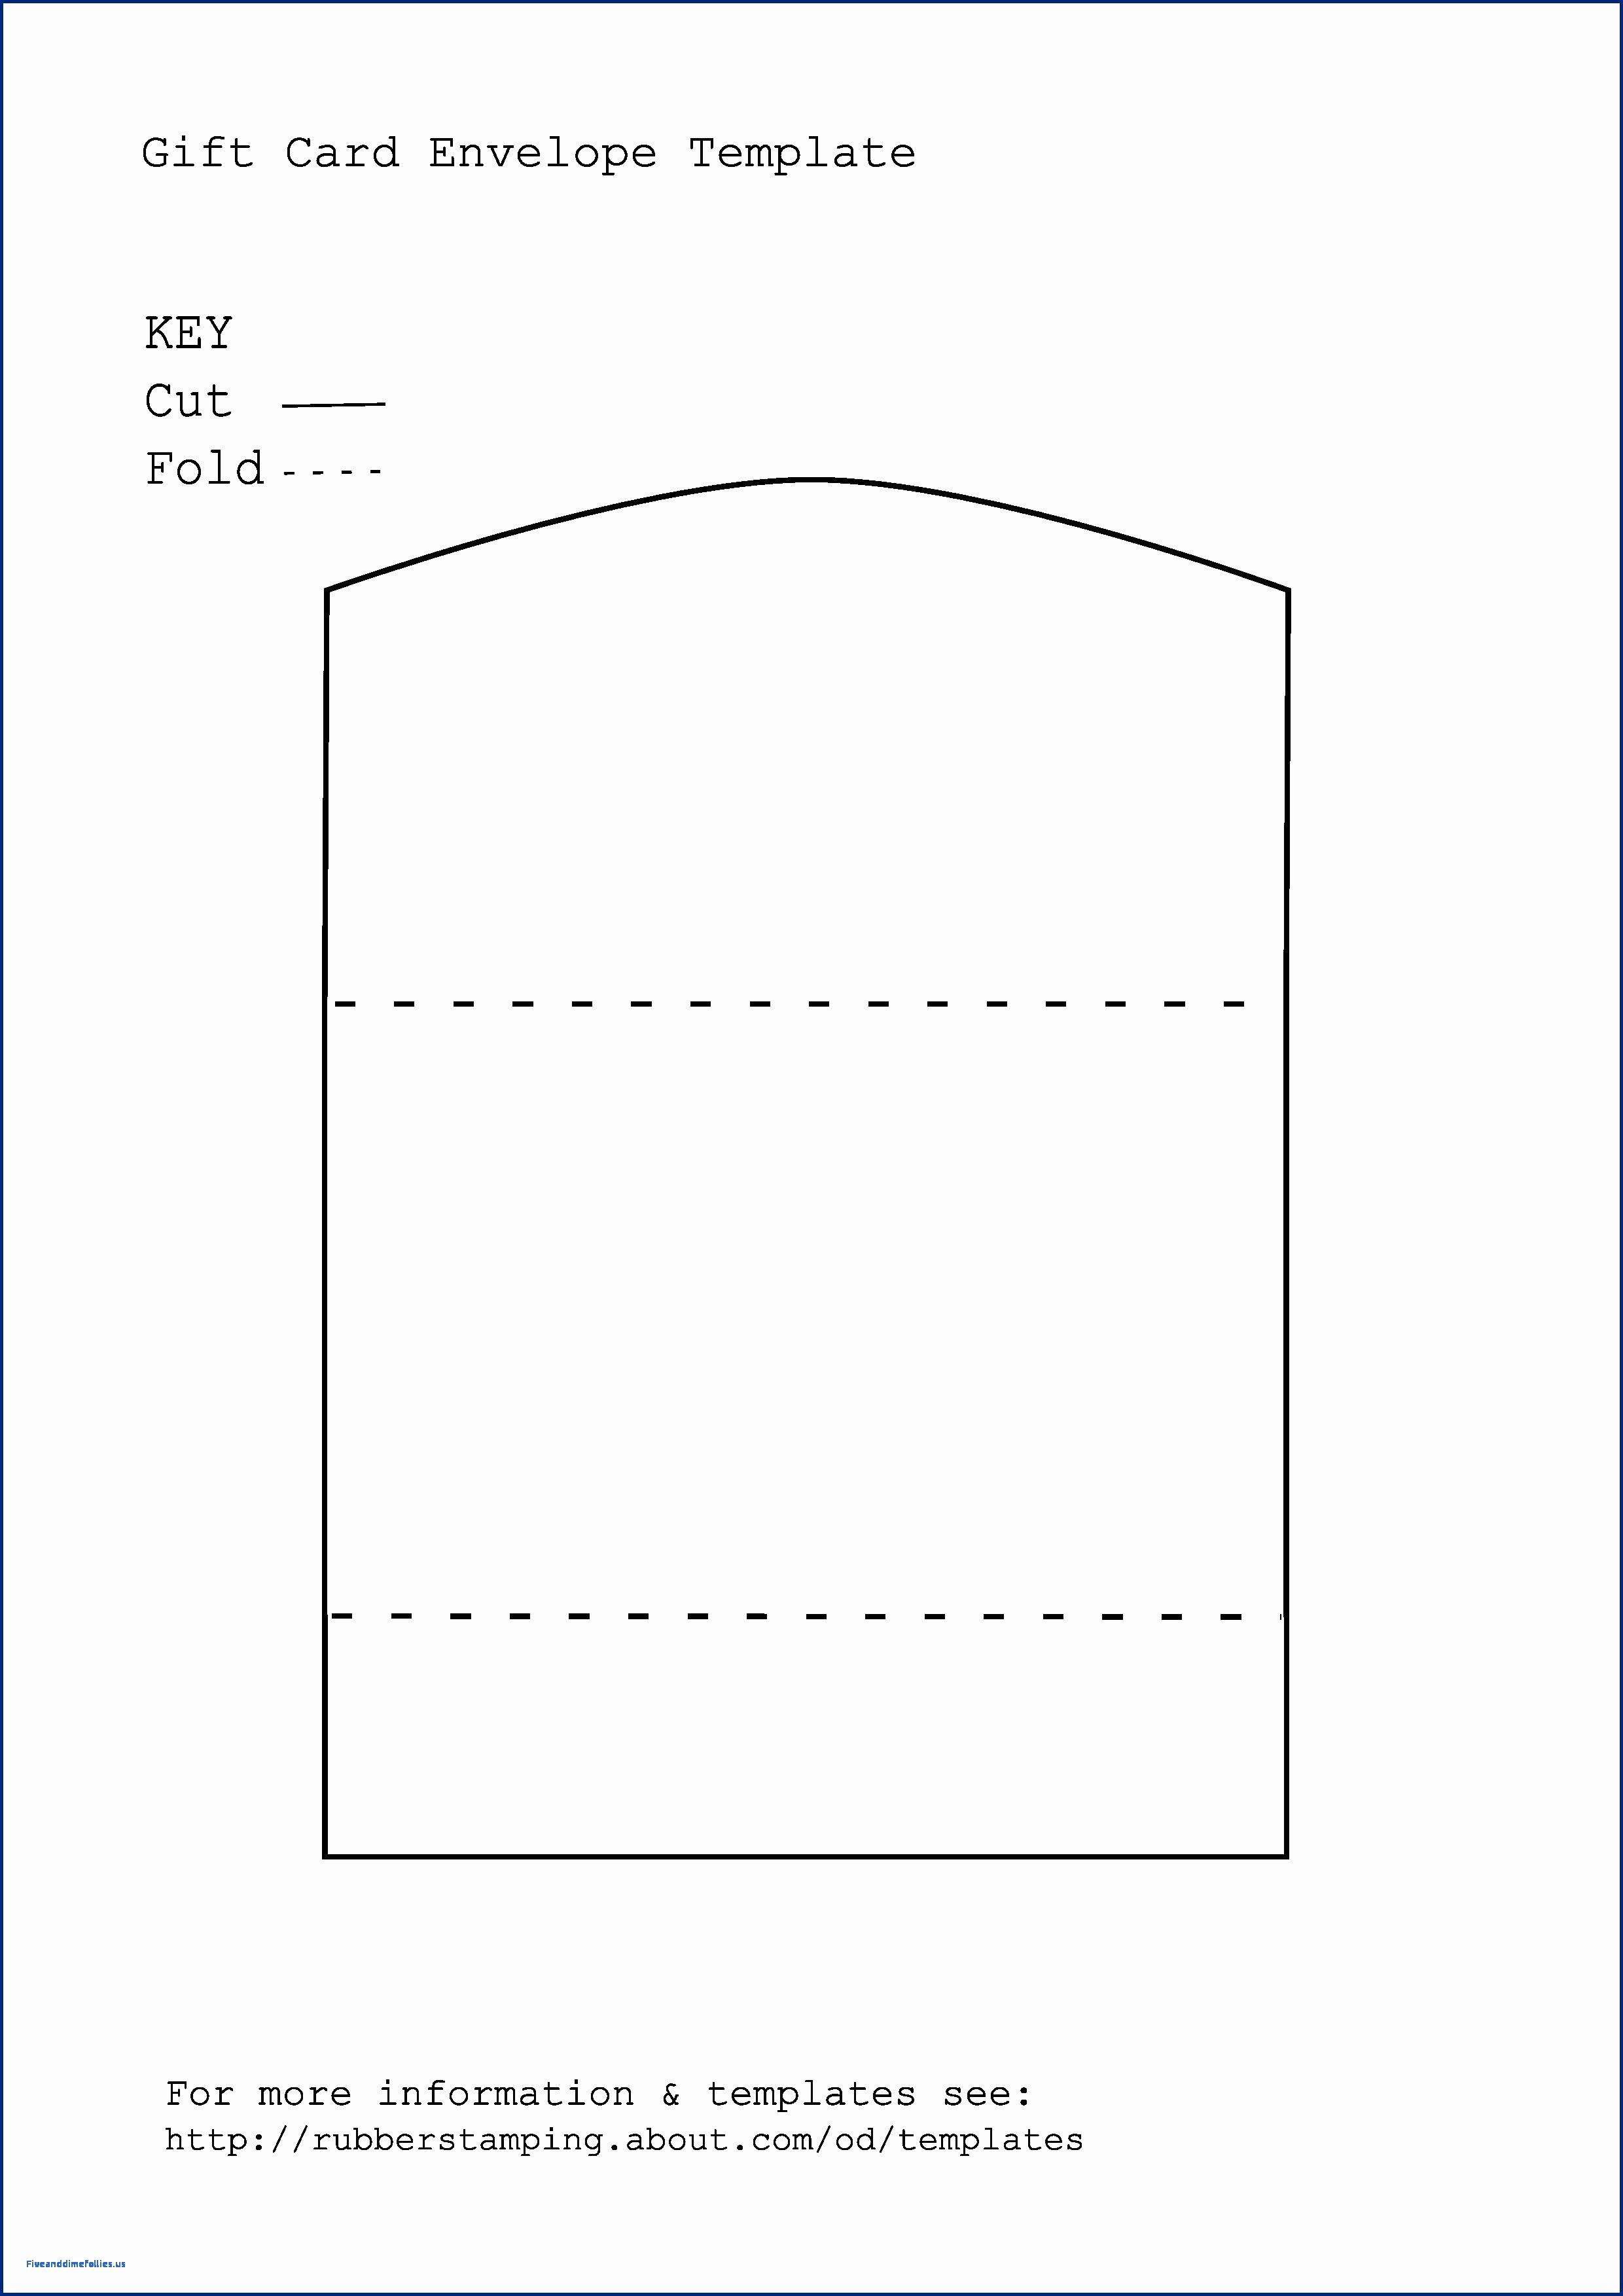 Gift Registry Card Template